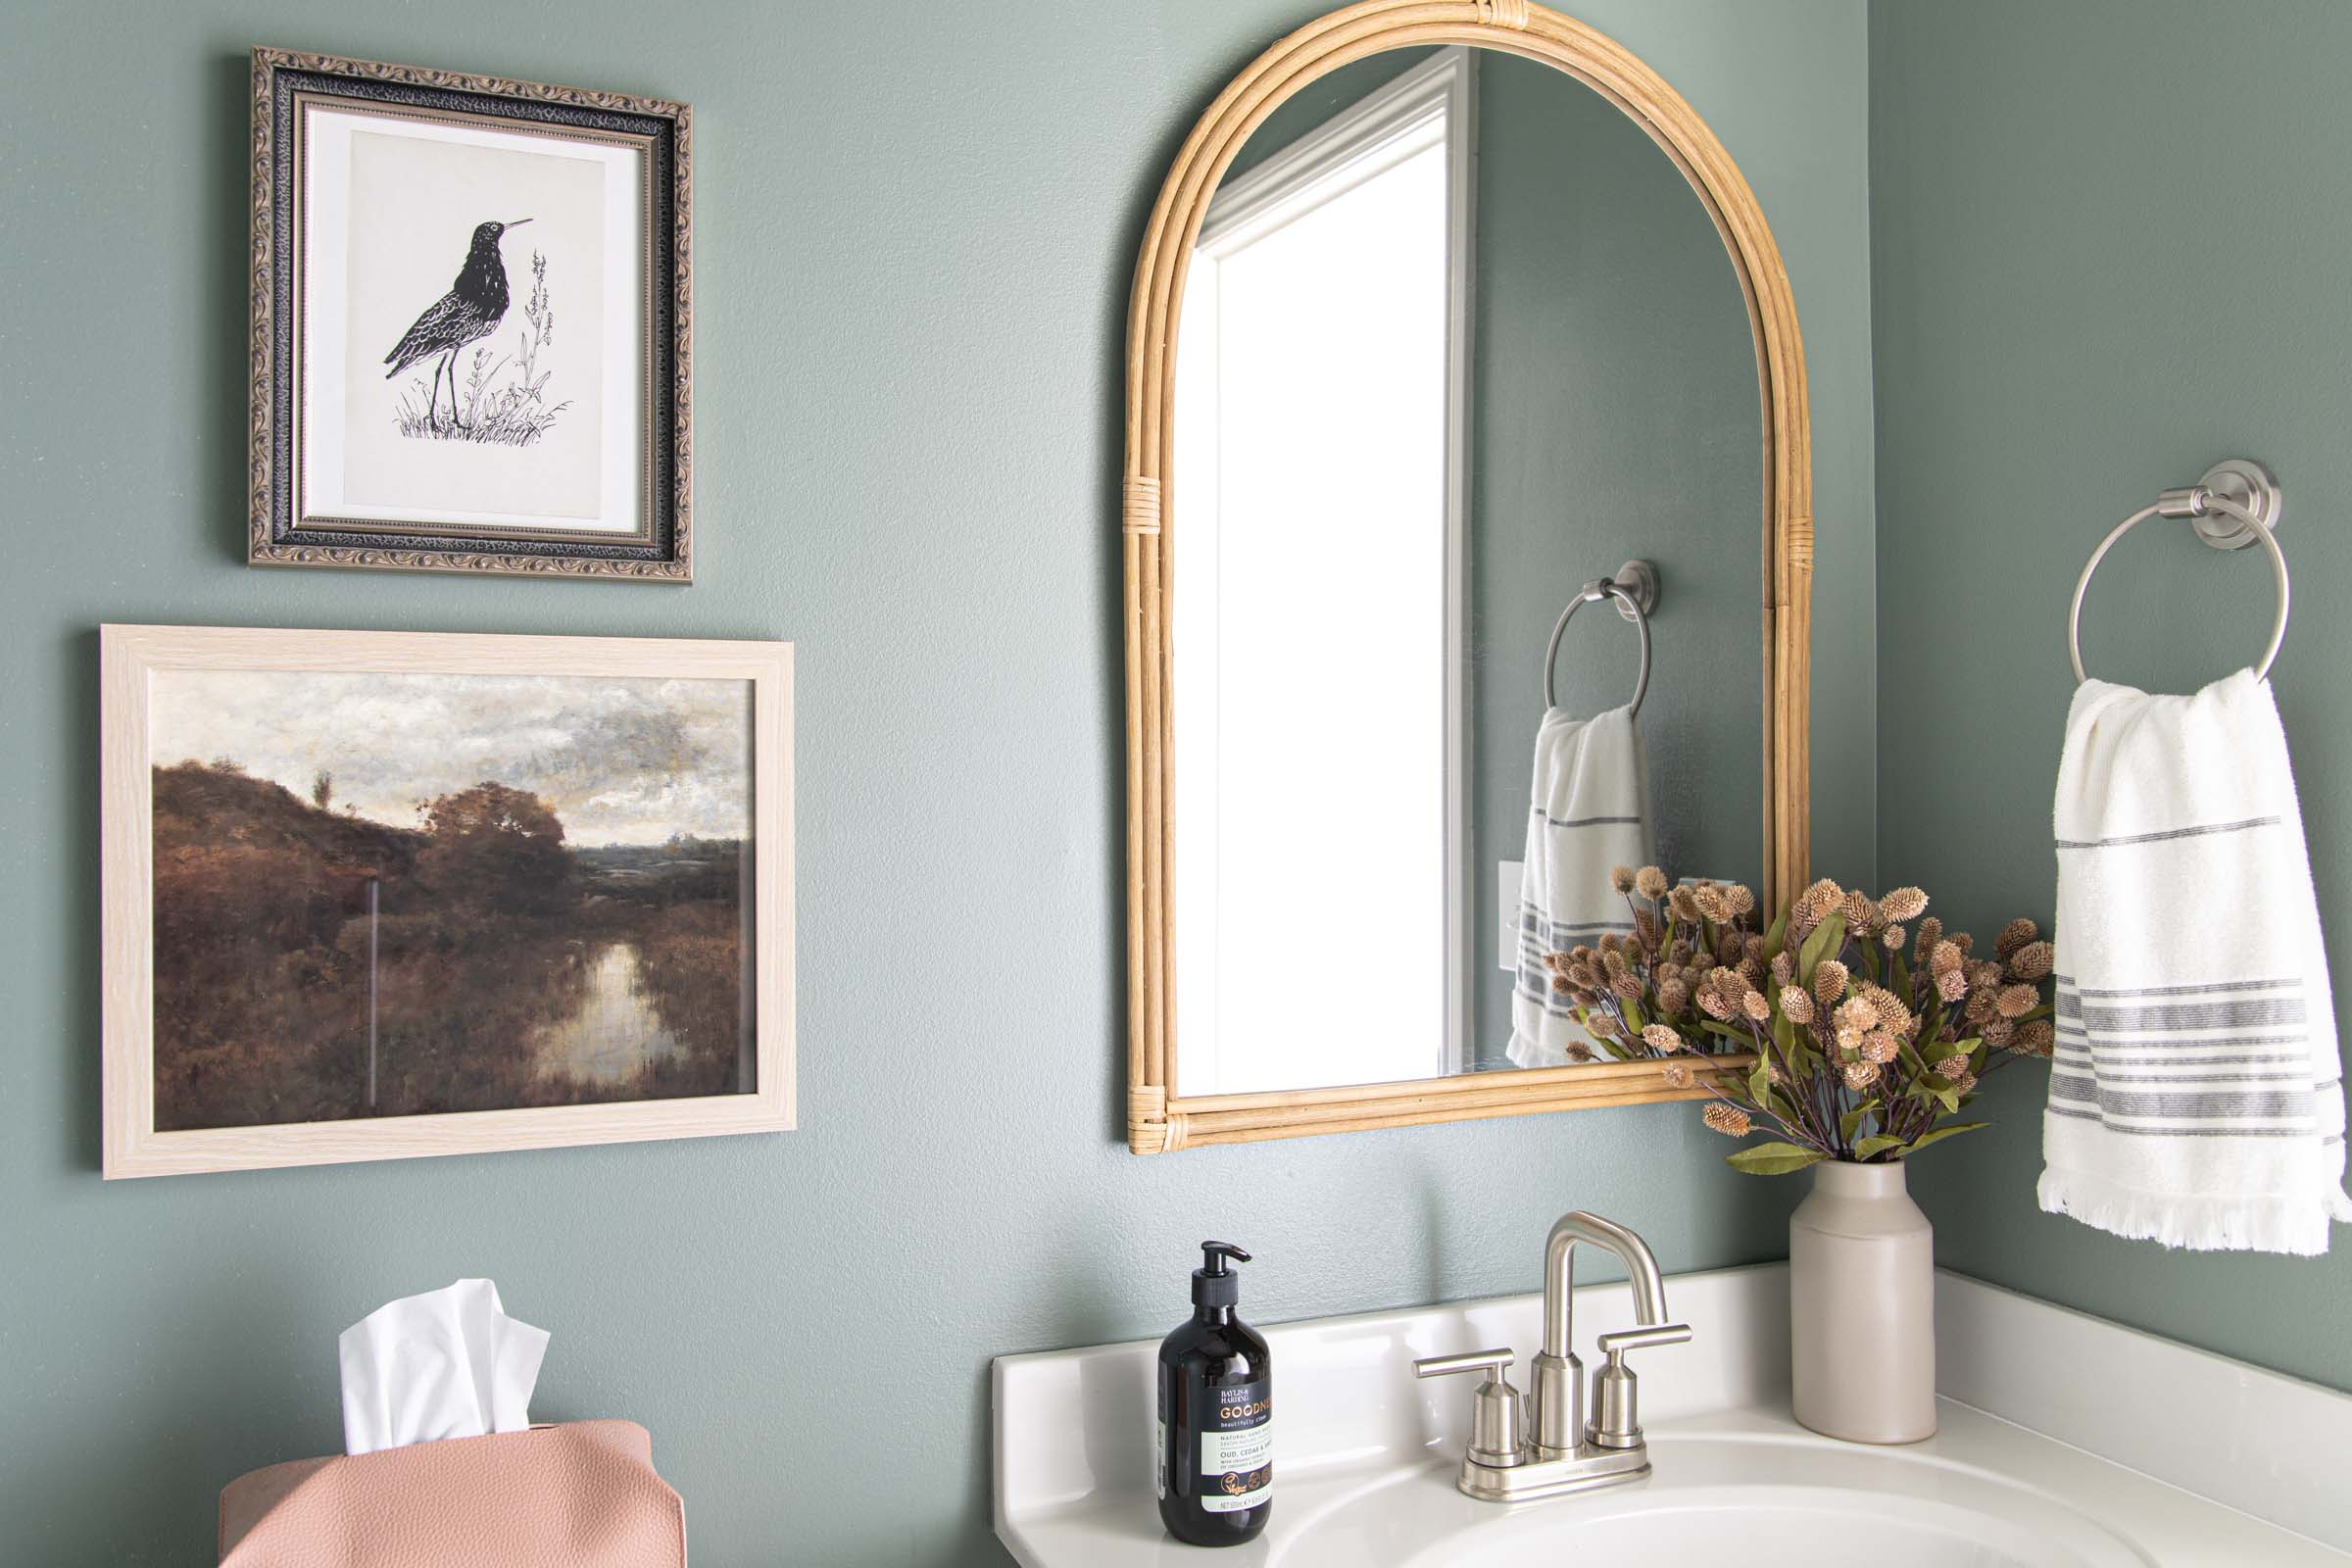 muted green wall paint, arched rattan mirror, vintage landscape art, leather tissue box cover, dried florals, modern bathroom faucet